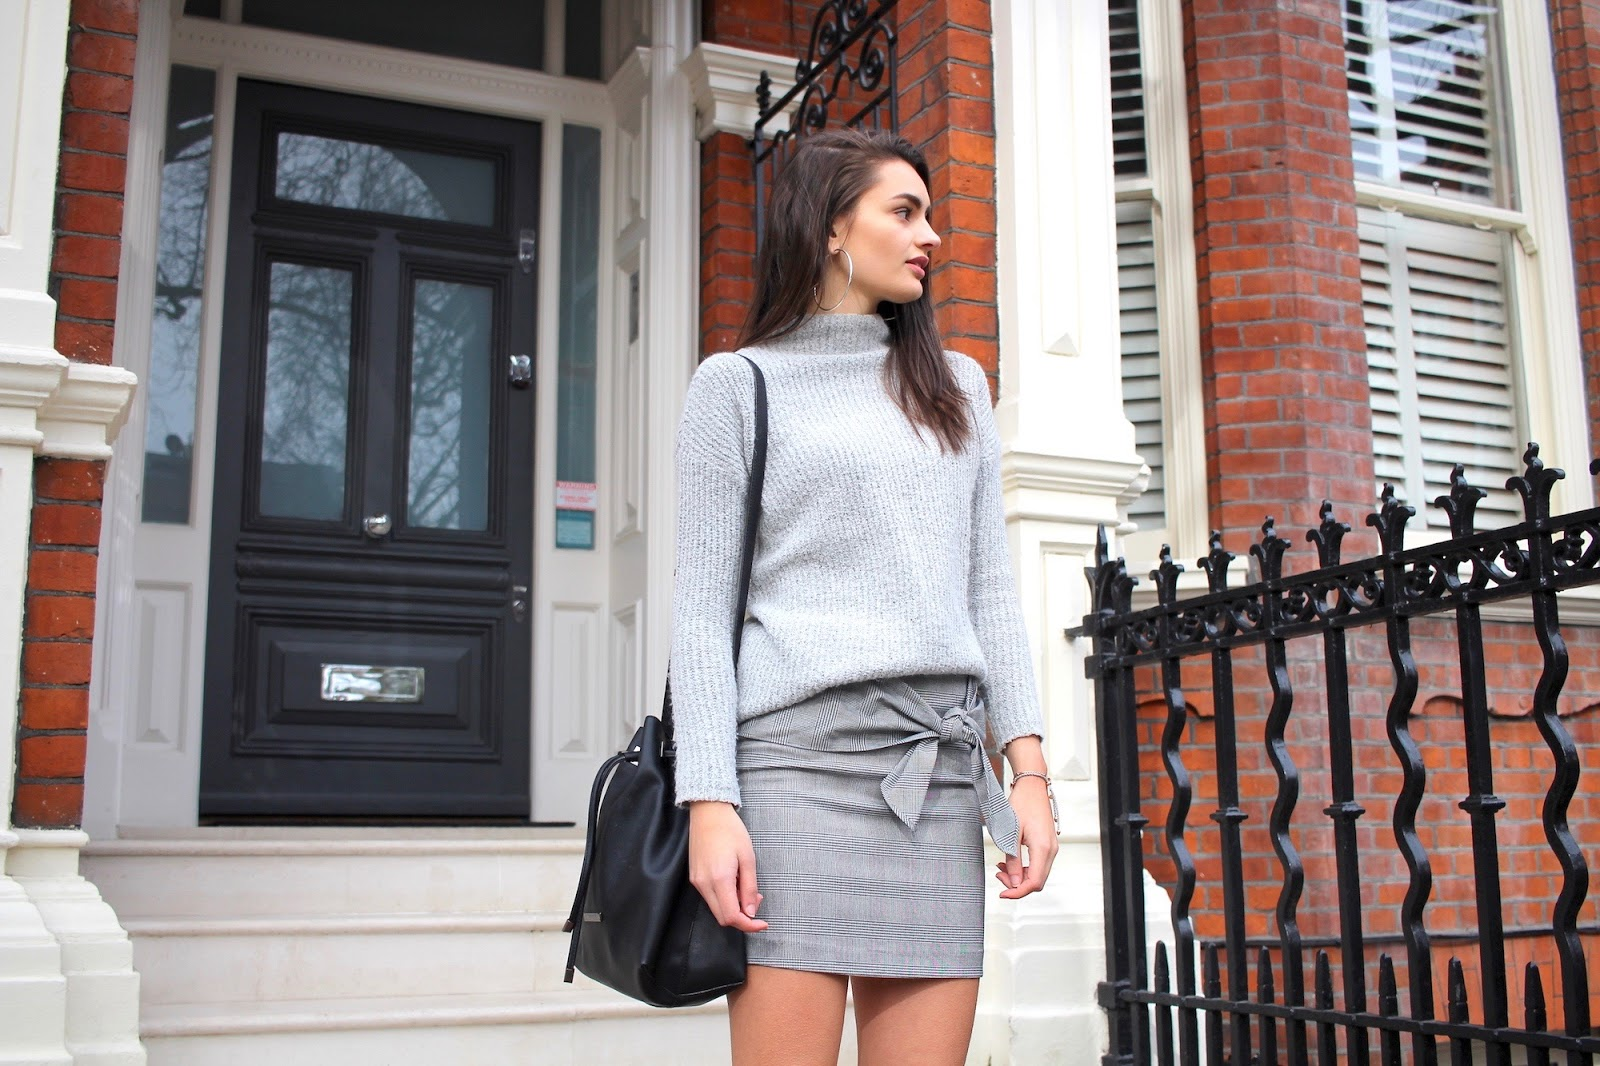 peexo london street style blogger